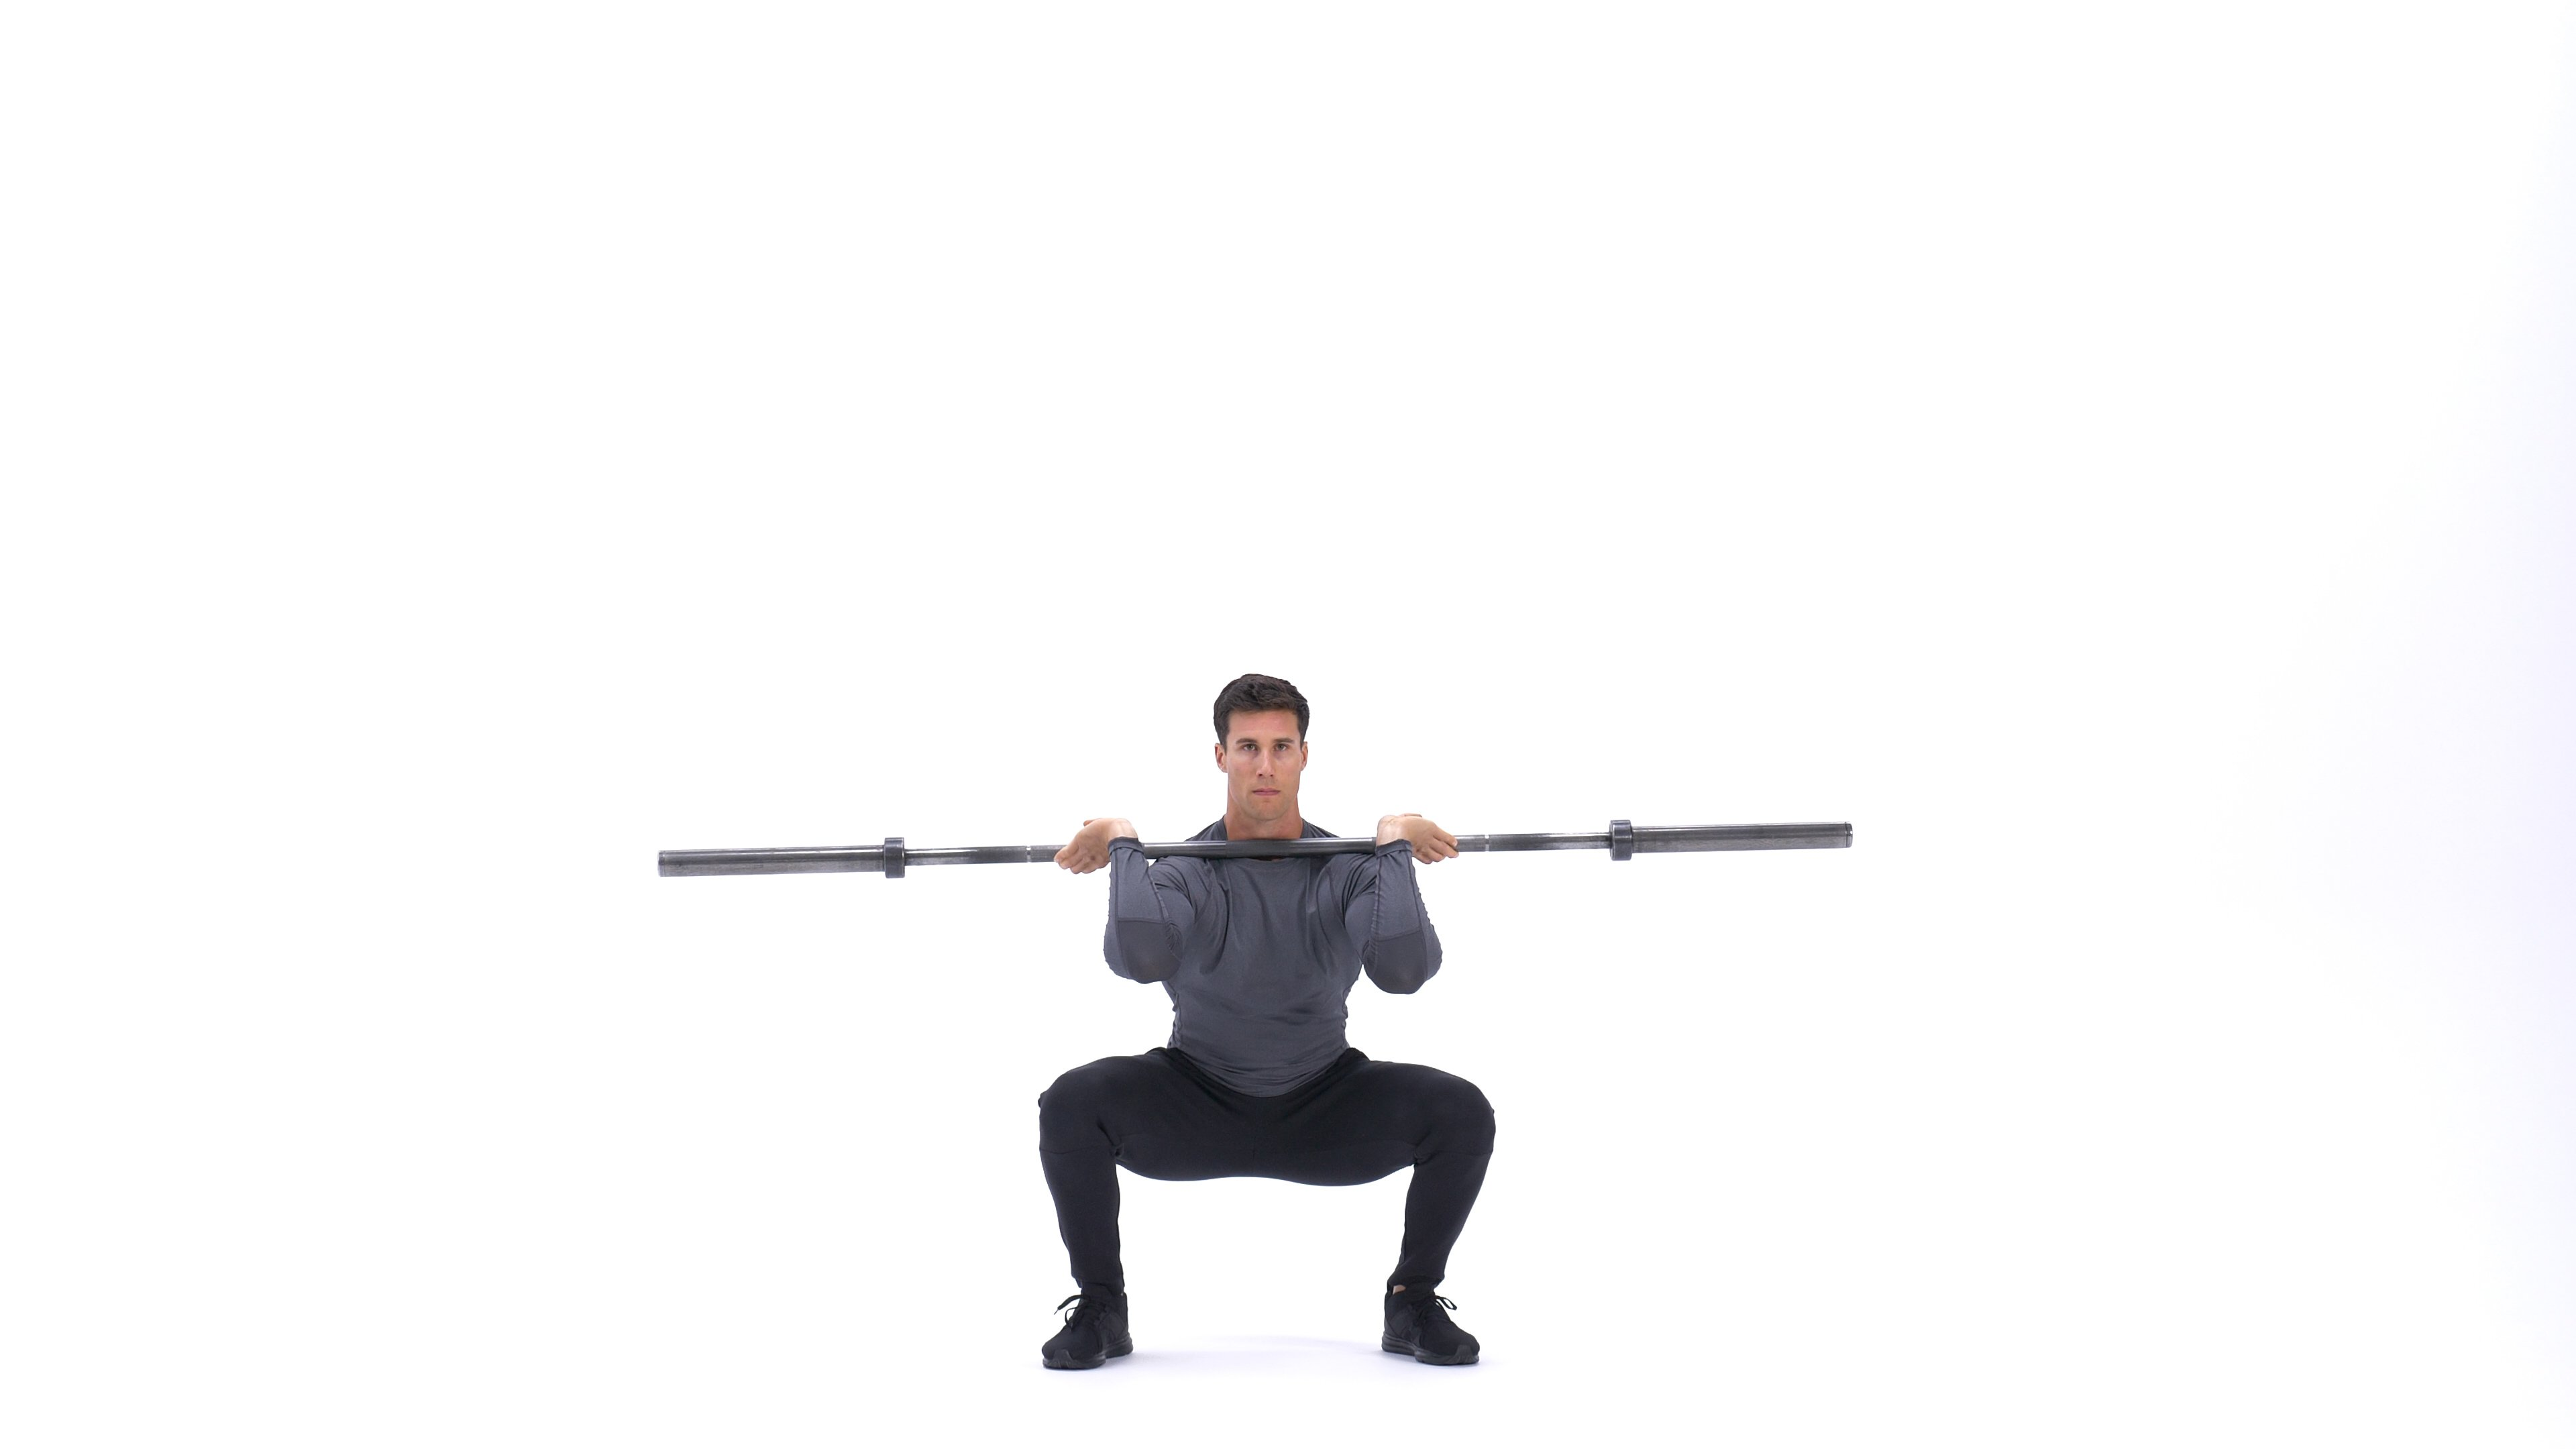 Barbell front squat to back squat image